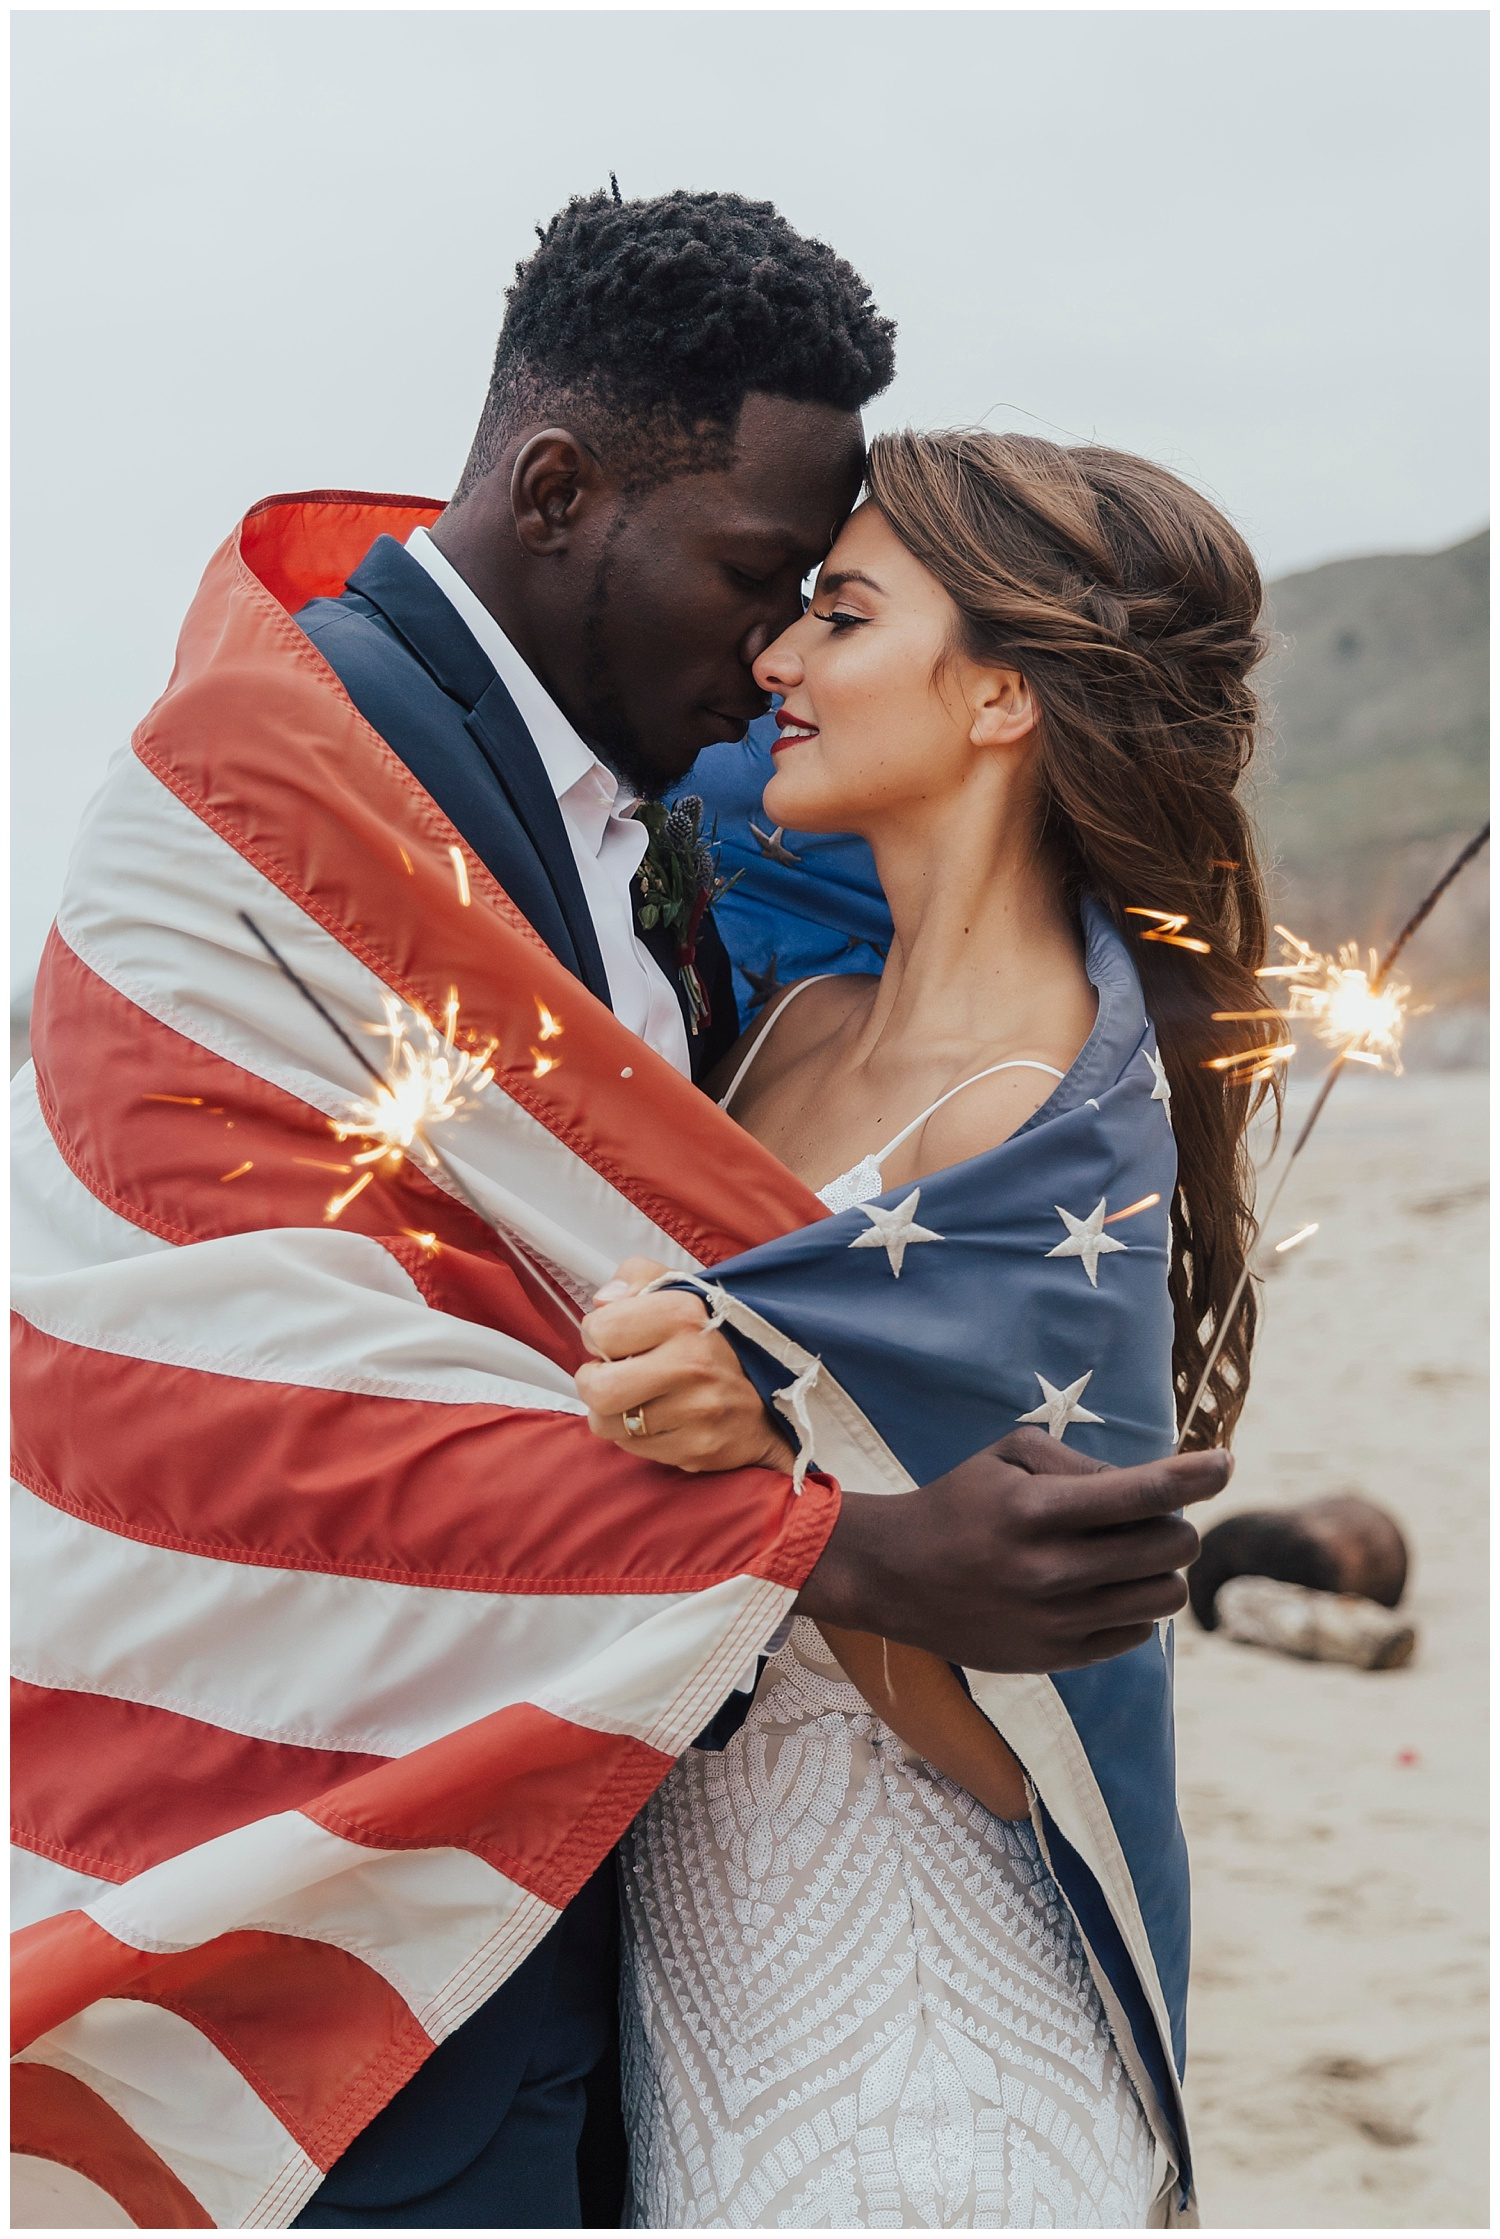 American-flag-inspired-elopement-big-sur.jpg